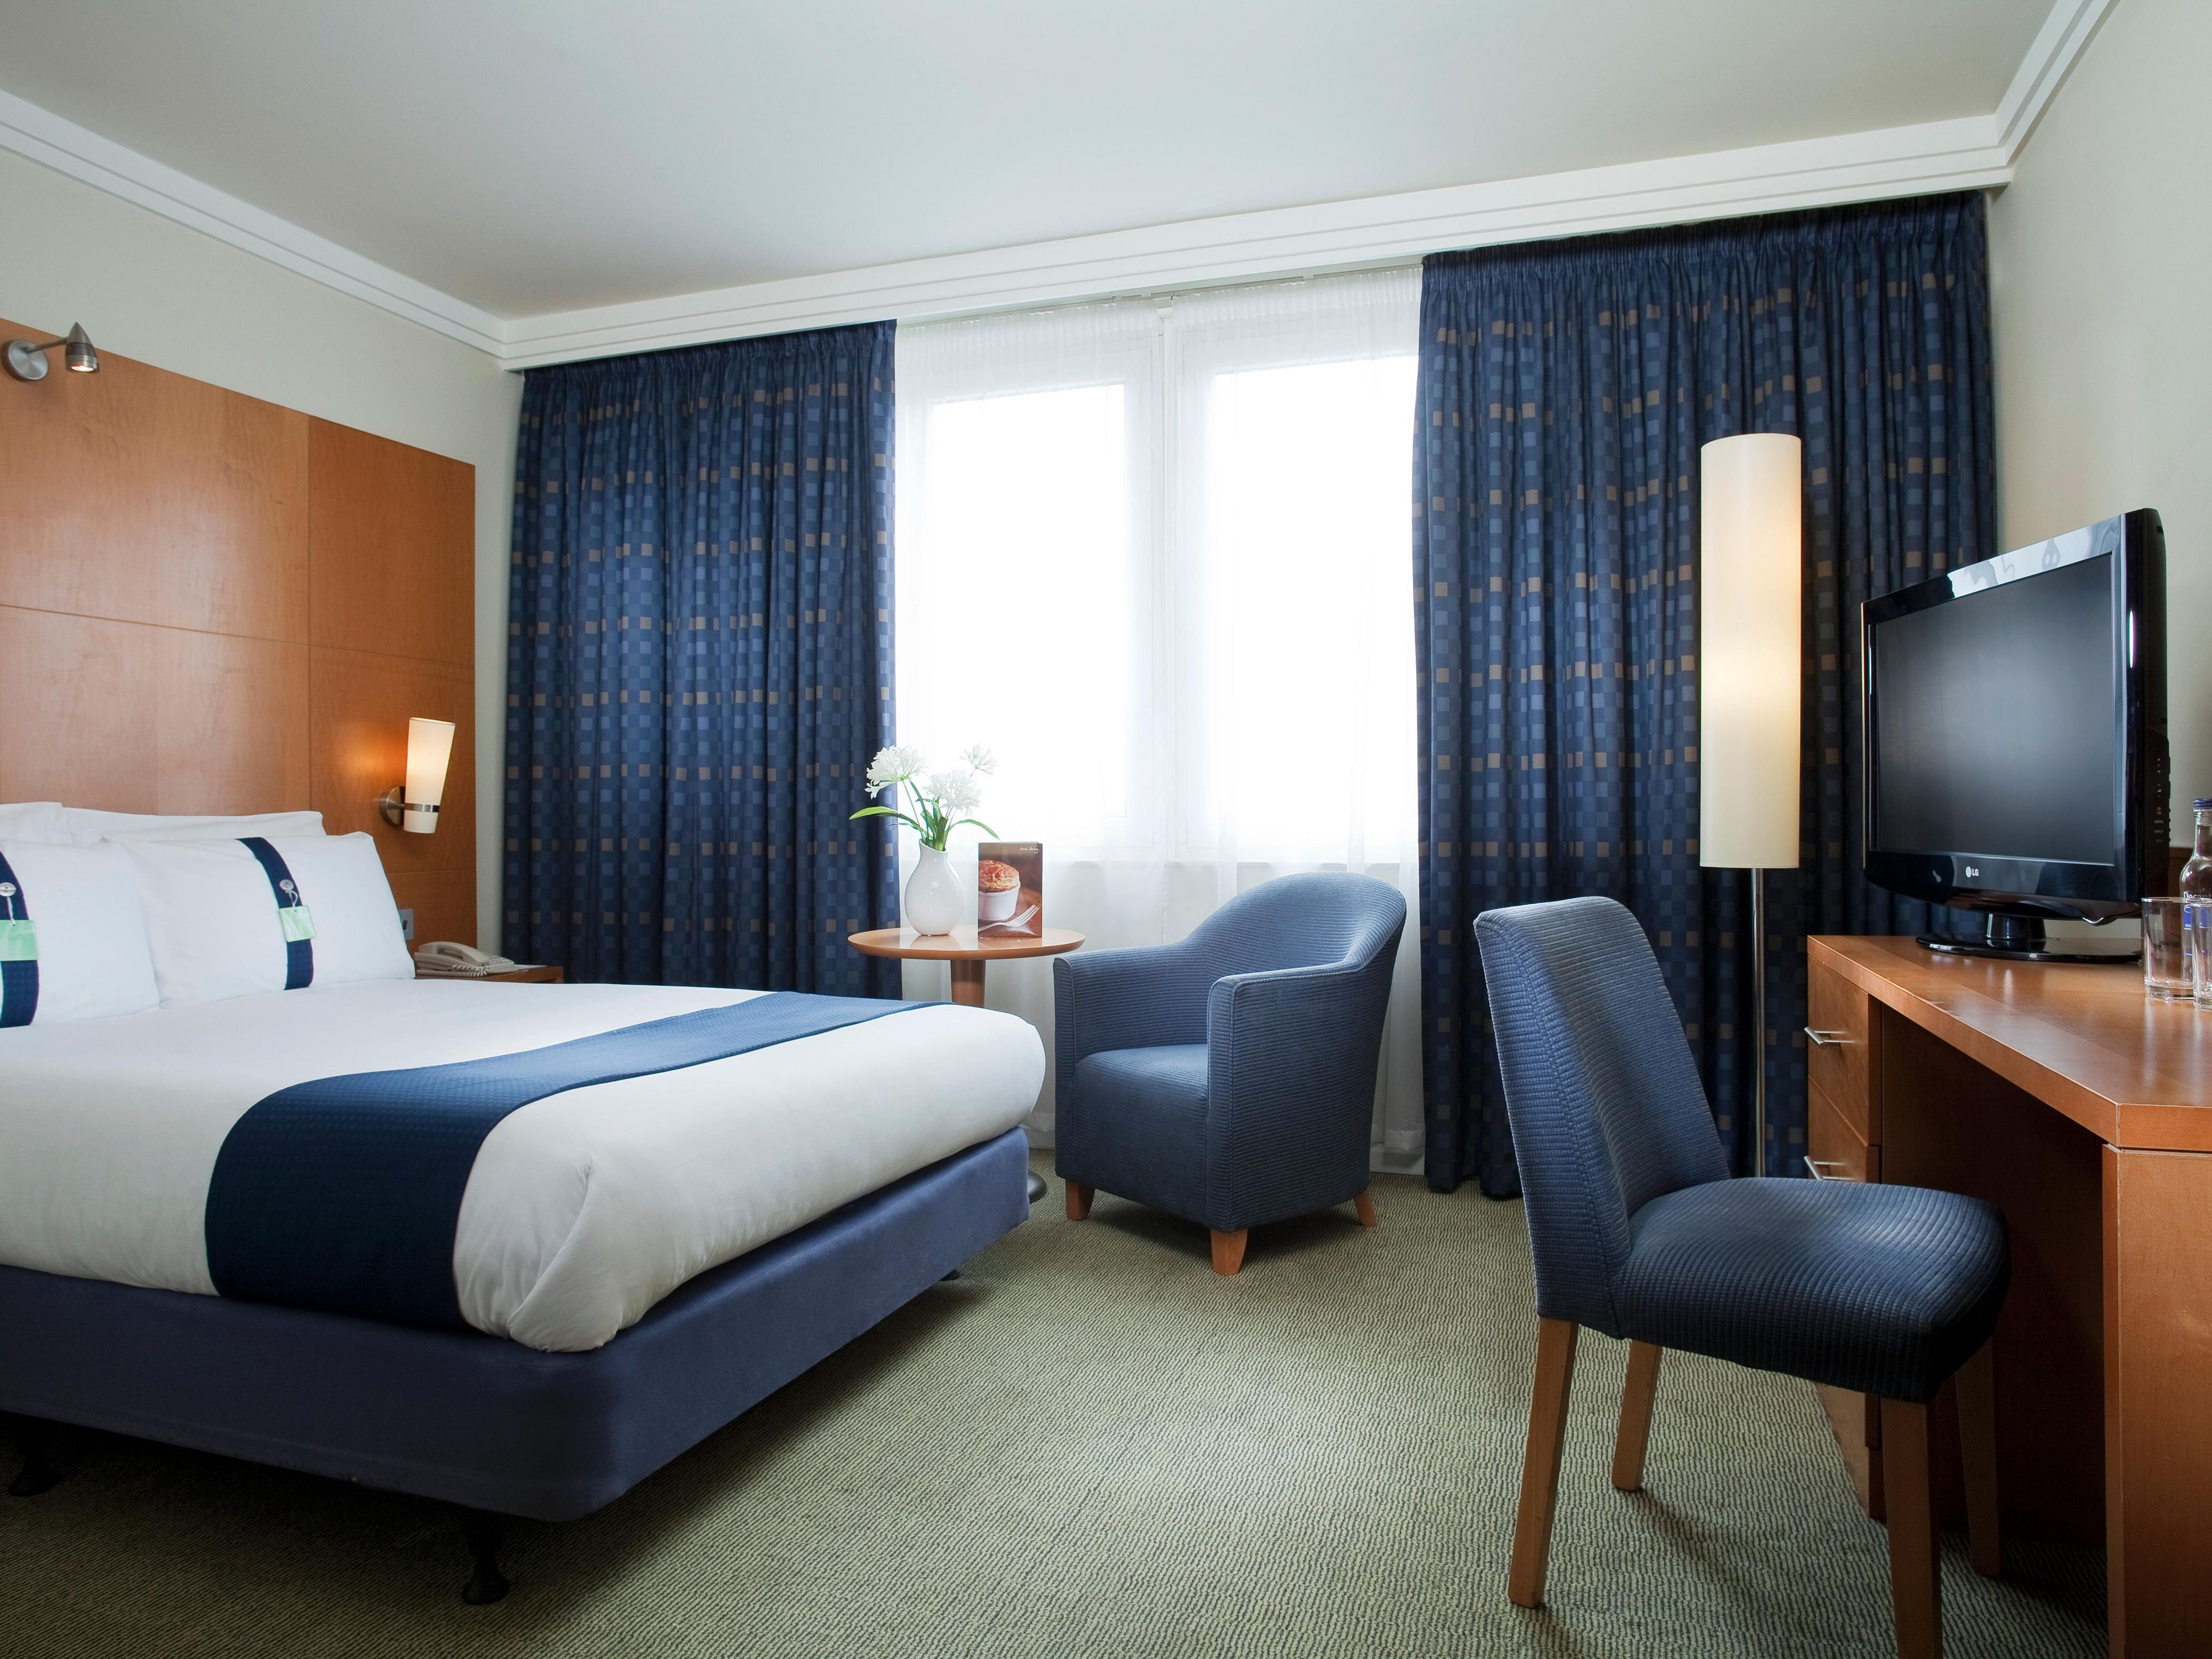 Holiday inn london brent cross reserva del hotel en for Hotel londres habitacion familiar